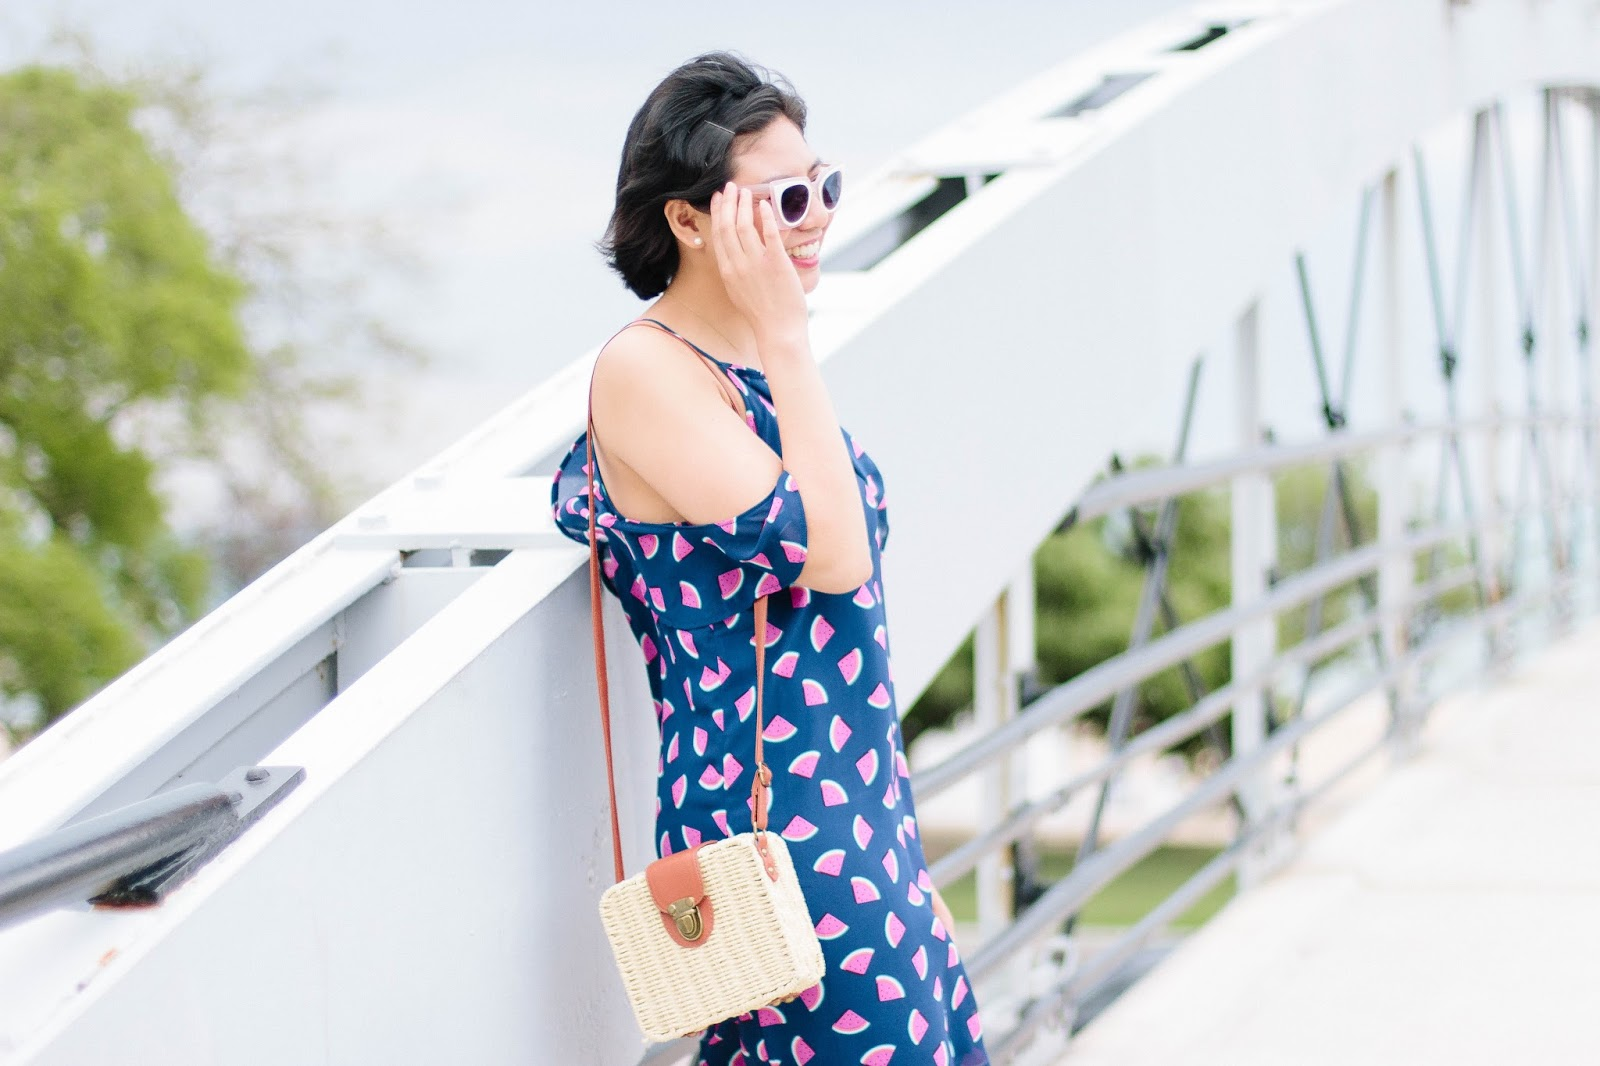 The Five Summer Must-Haves are sunglasses, straw bags, anything in prints, espadrilles, and sunscreen.